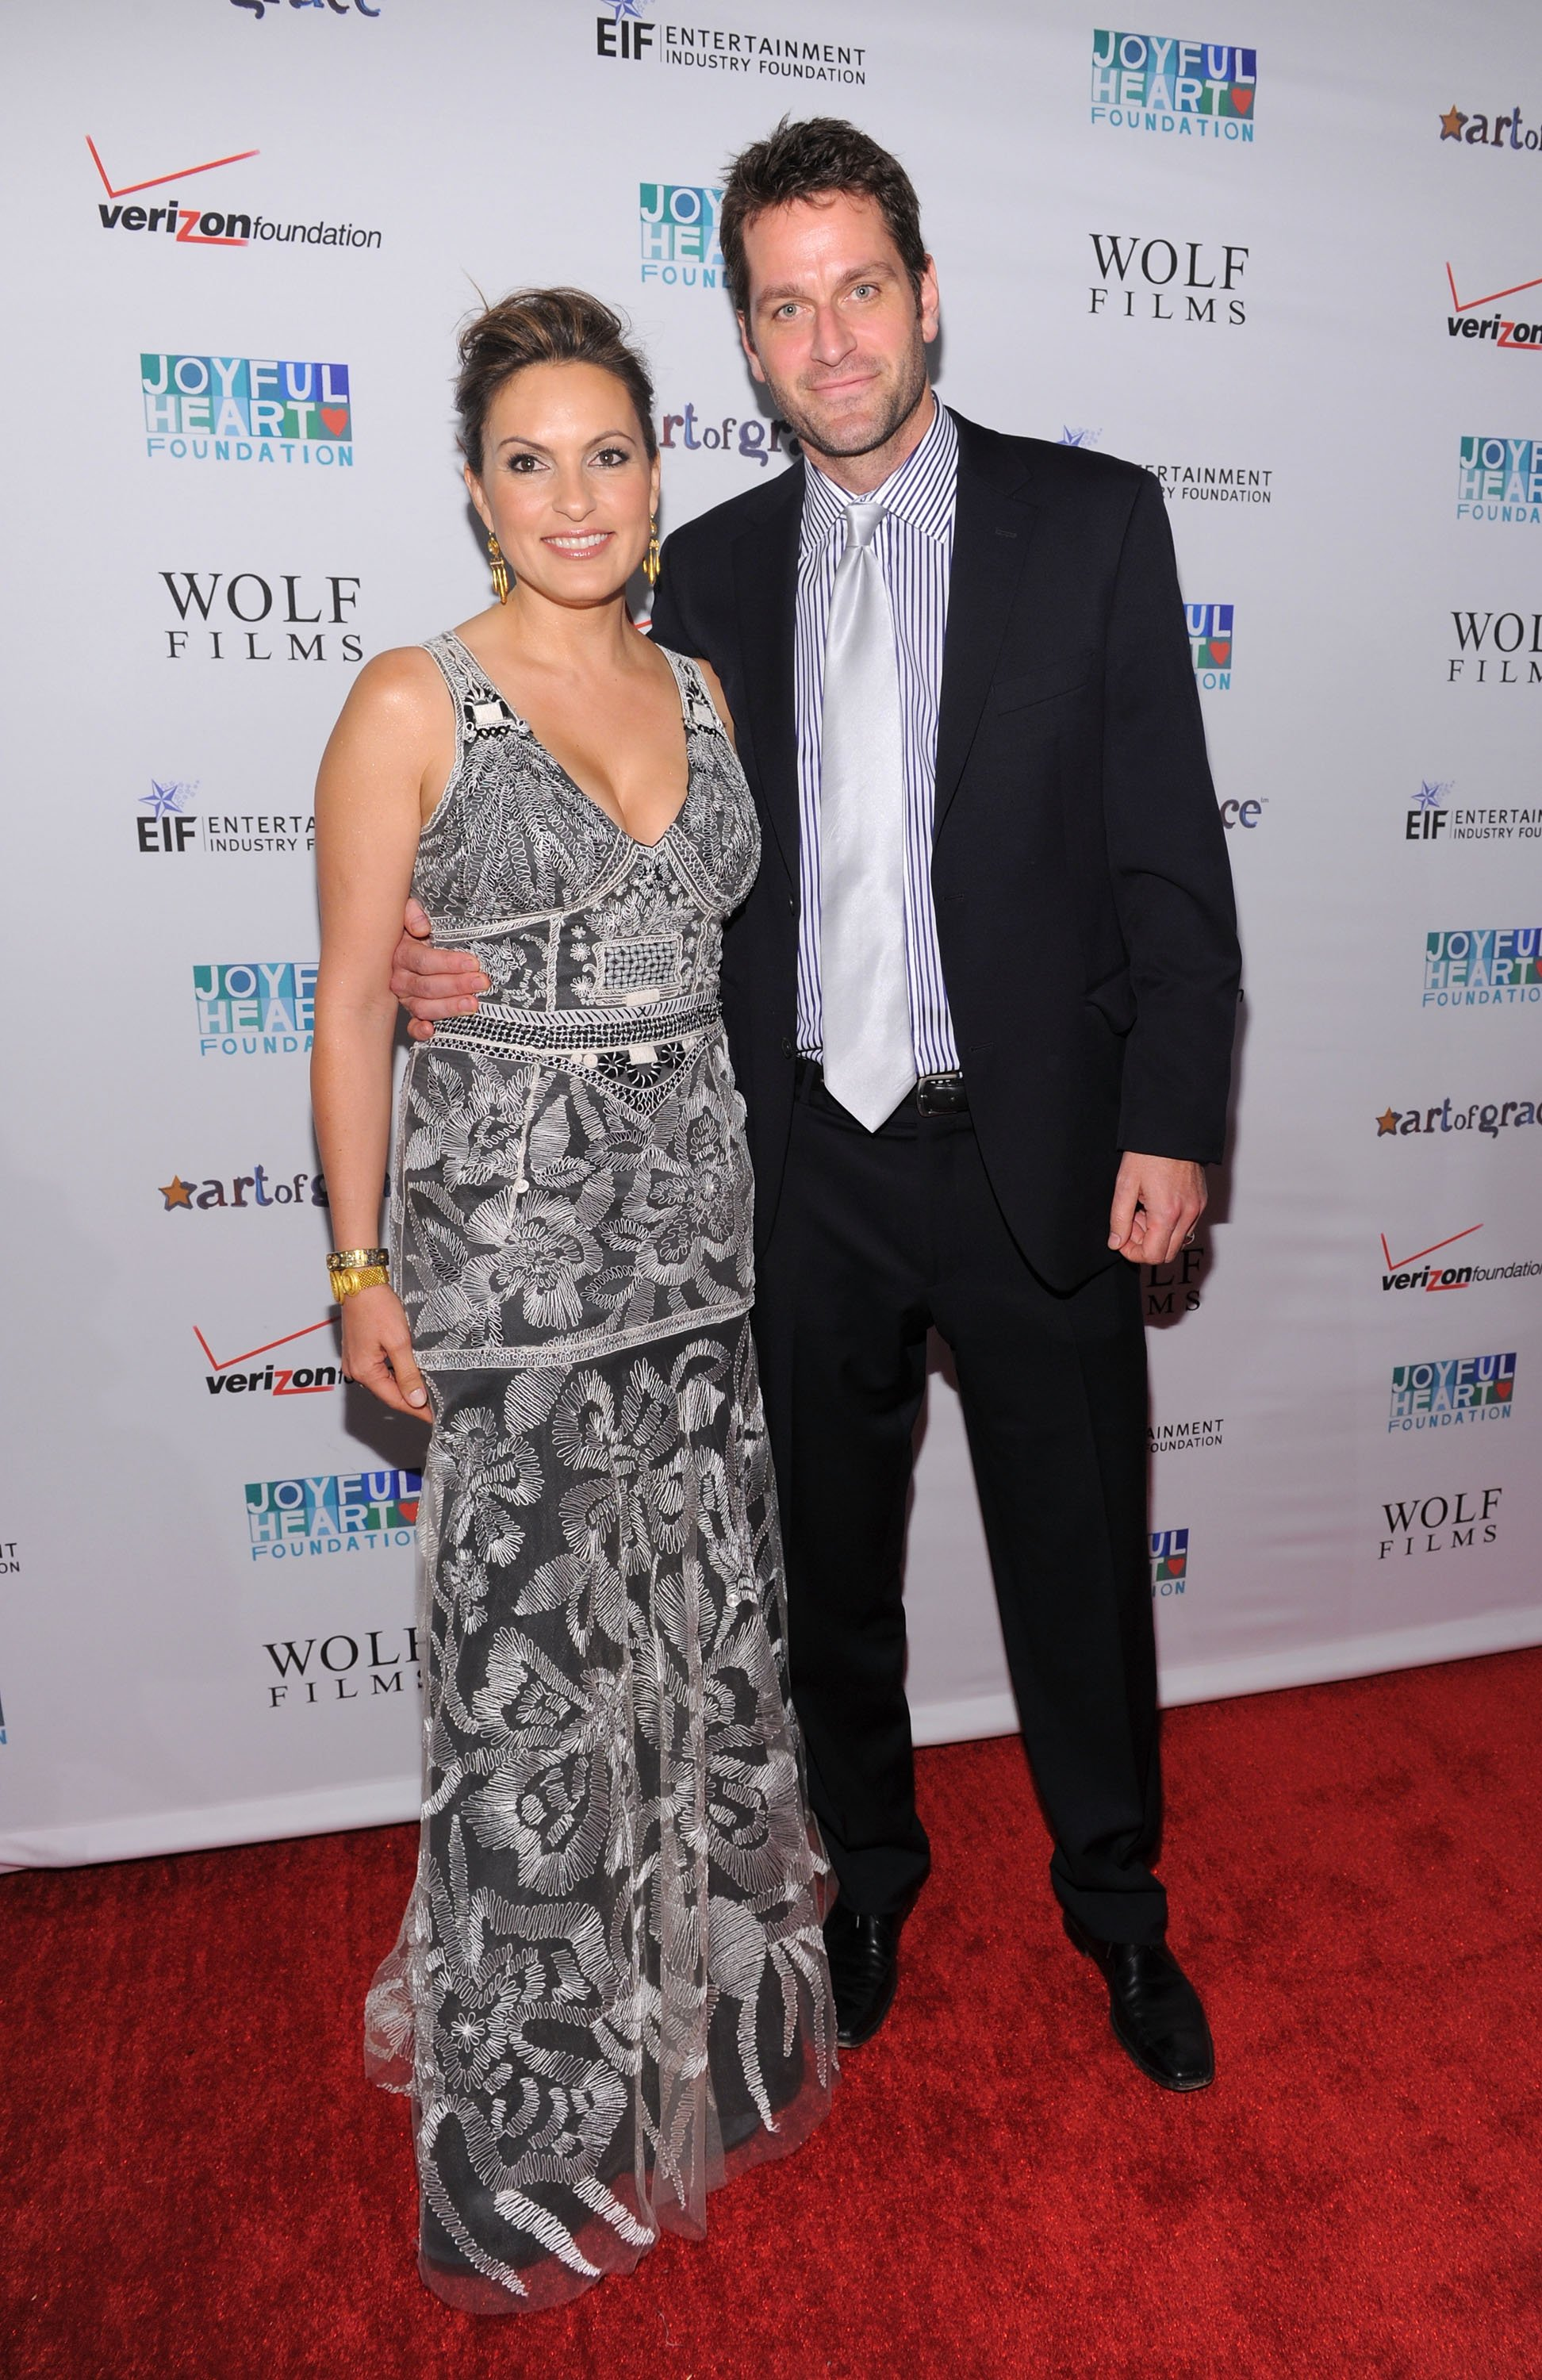 Mariska Hargitay and Peter Hermann attend the Joyful Heart Foundation Gala in New York City on May 17, 2011 | Photo: Getty Images